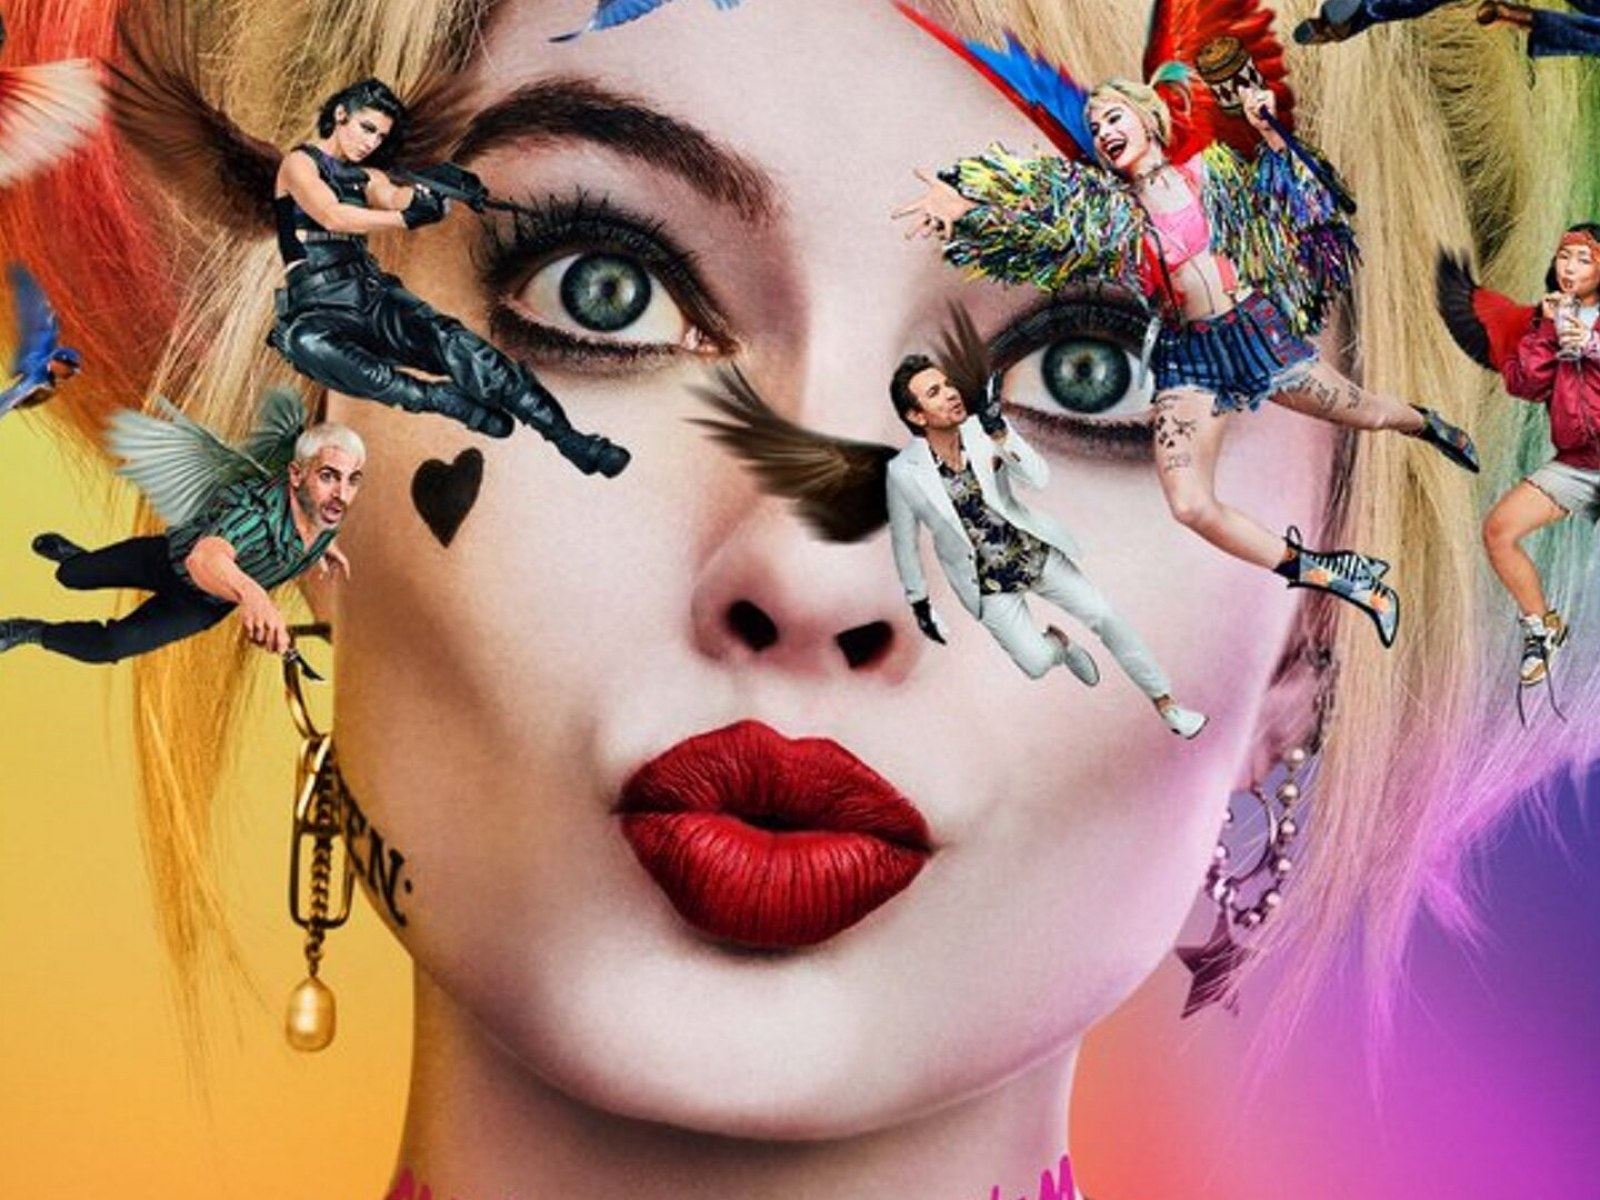 Birds Of Prey Streaming How To Watch Harley Quinn Movie Online After Early Release Date Announced